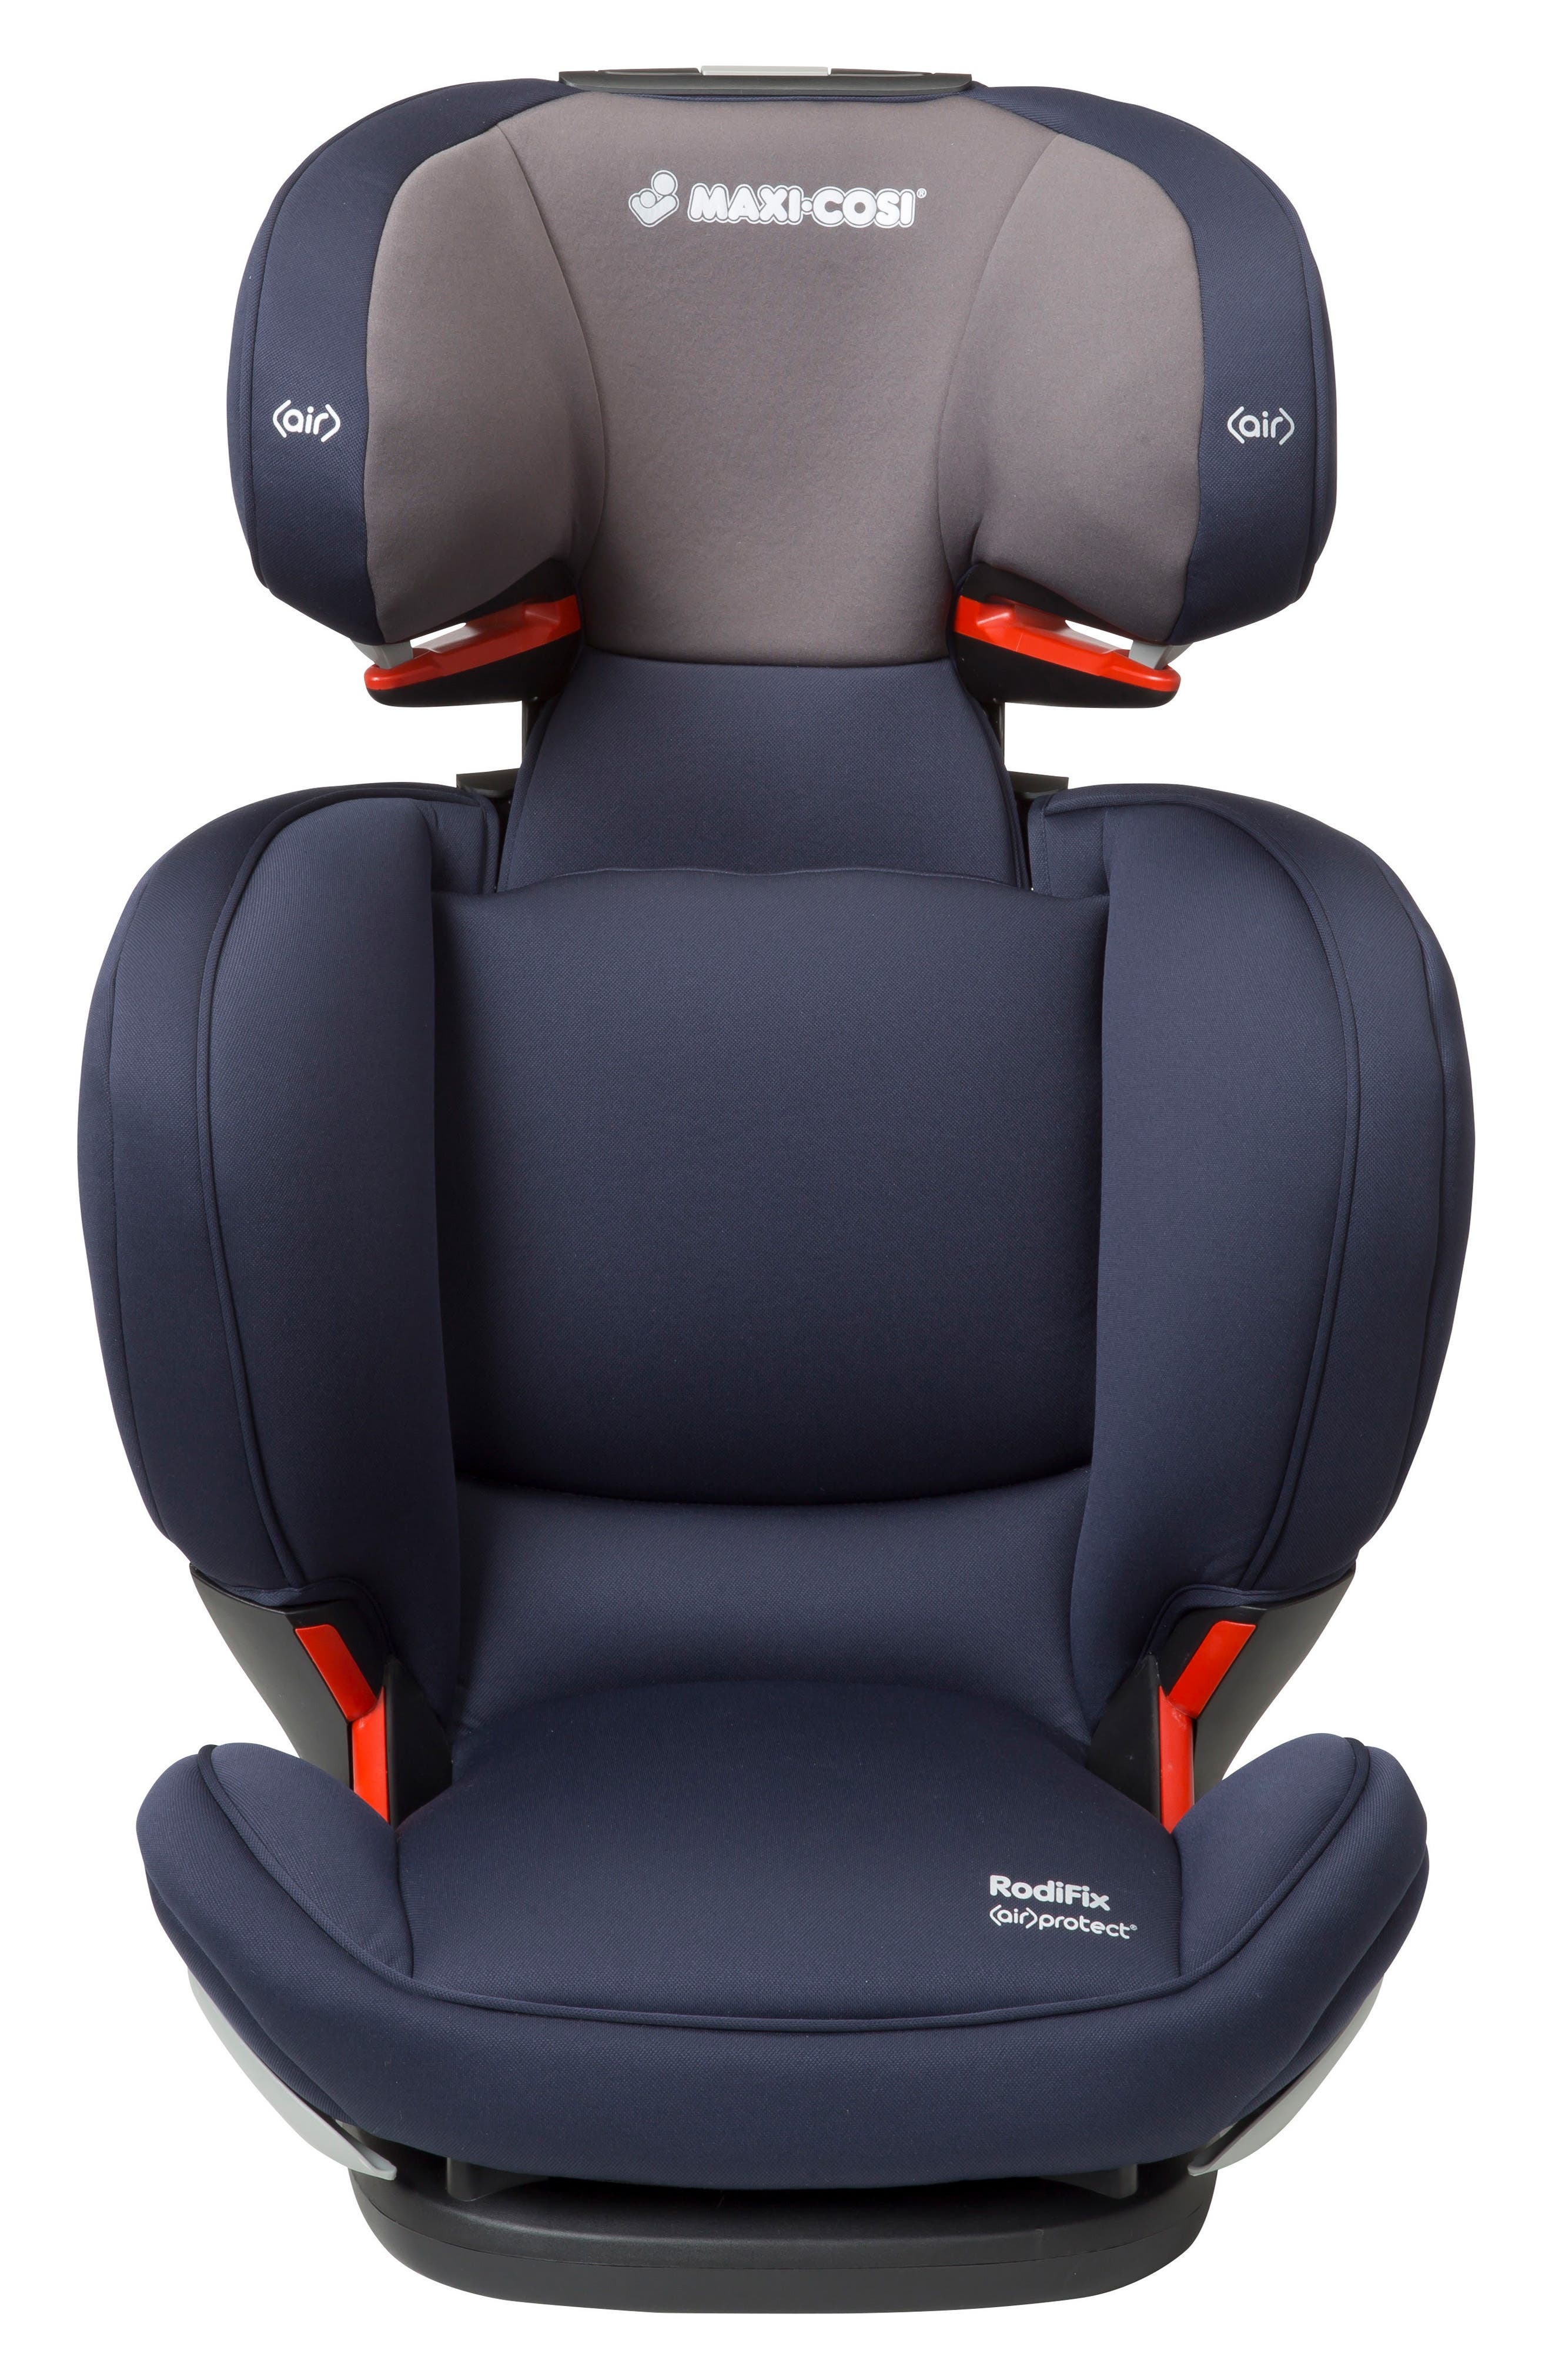 Maxi-Cosi® RodiFix Booster Car Seat